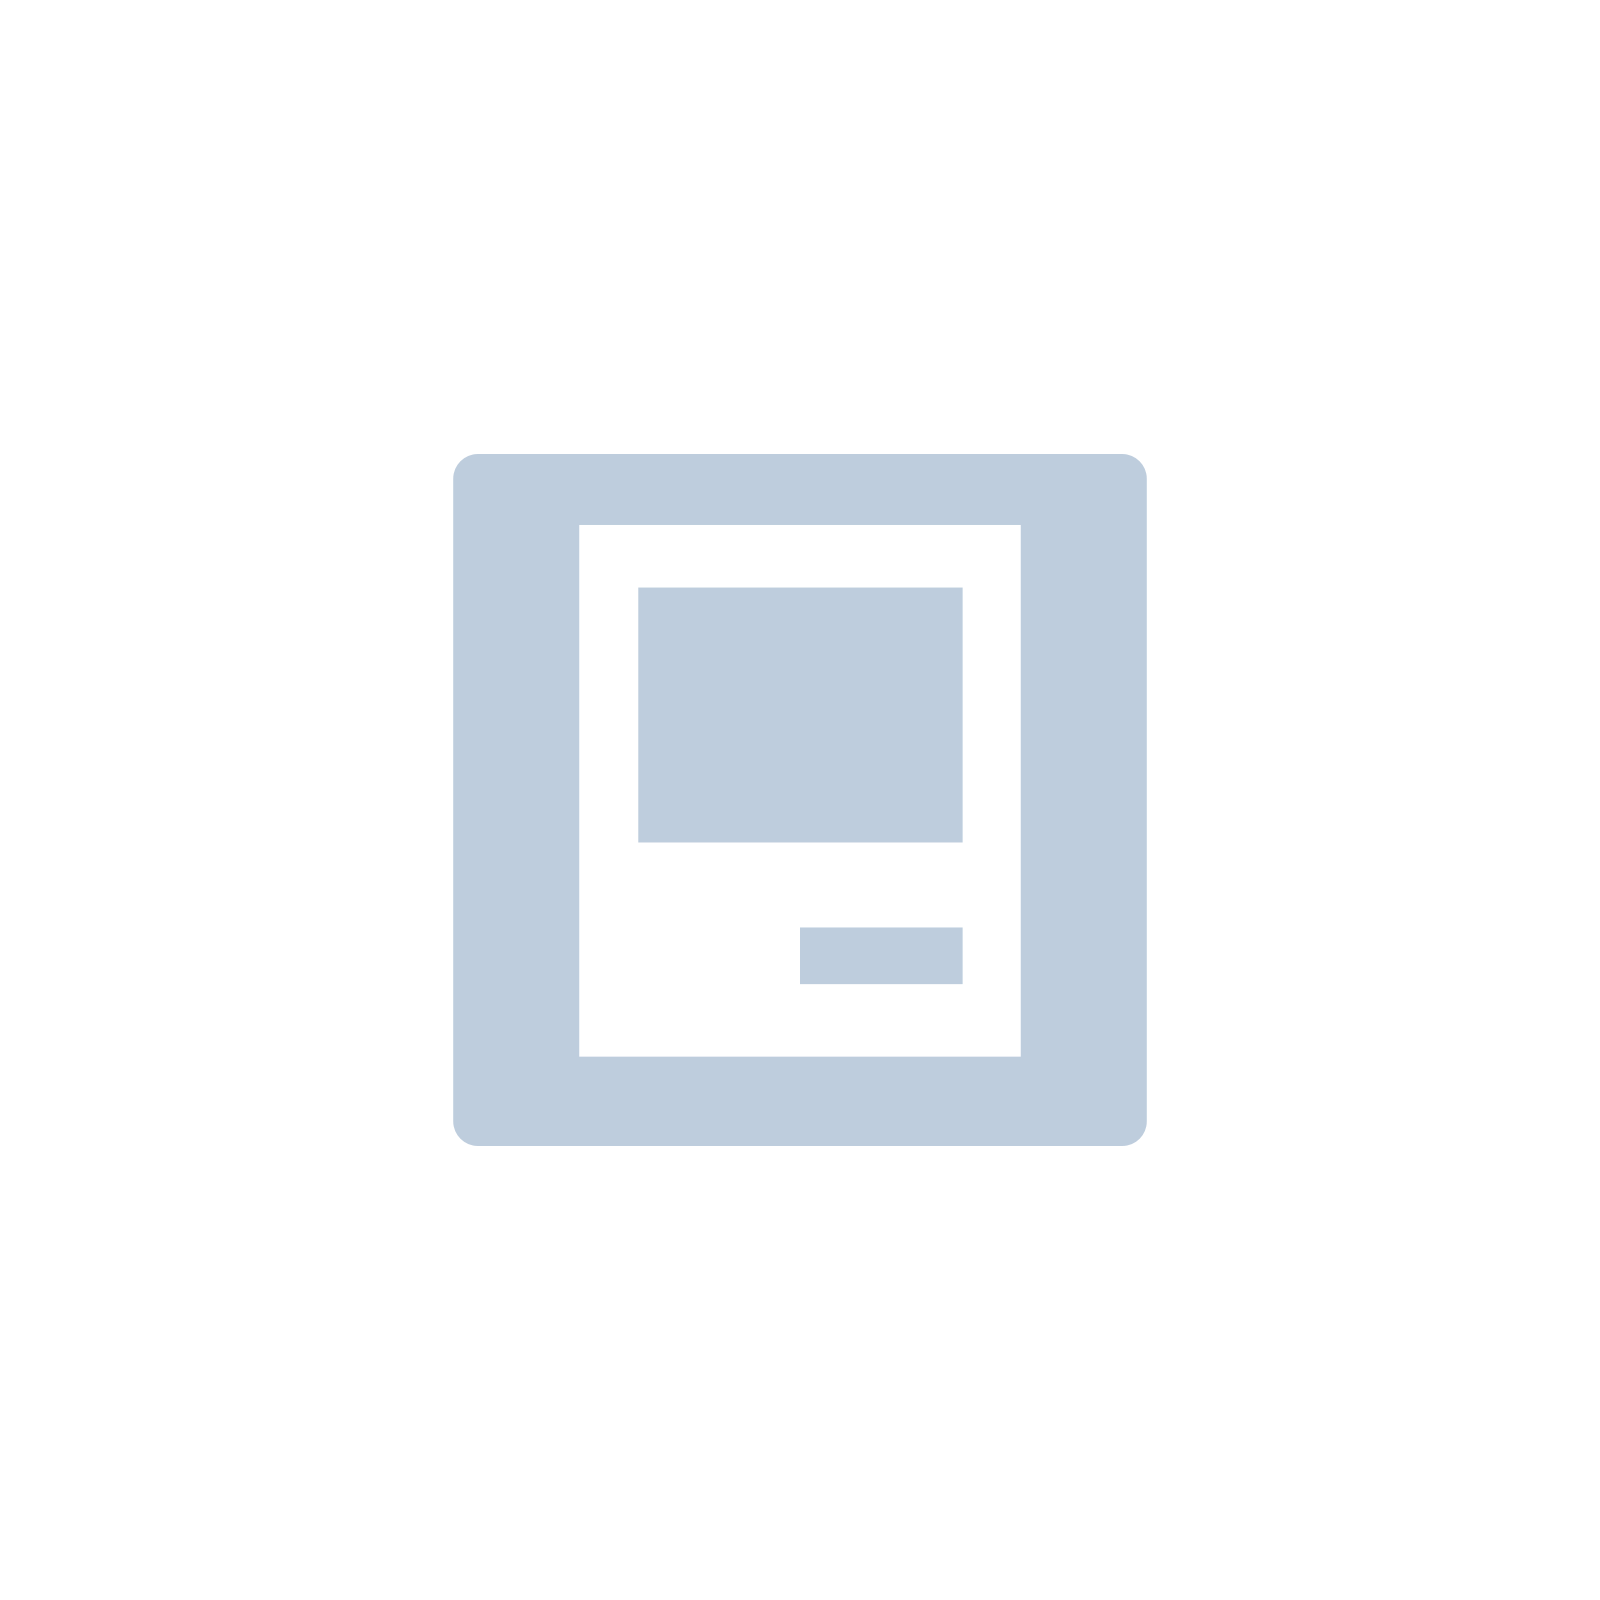 Apple Watch Series 2 42 mm Aluminiumgehäuse in Grau mit Nylonarmband in Grau